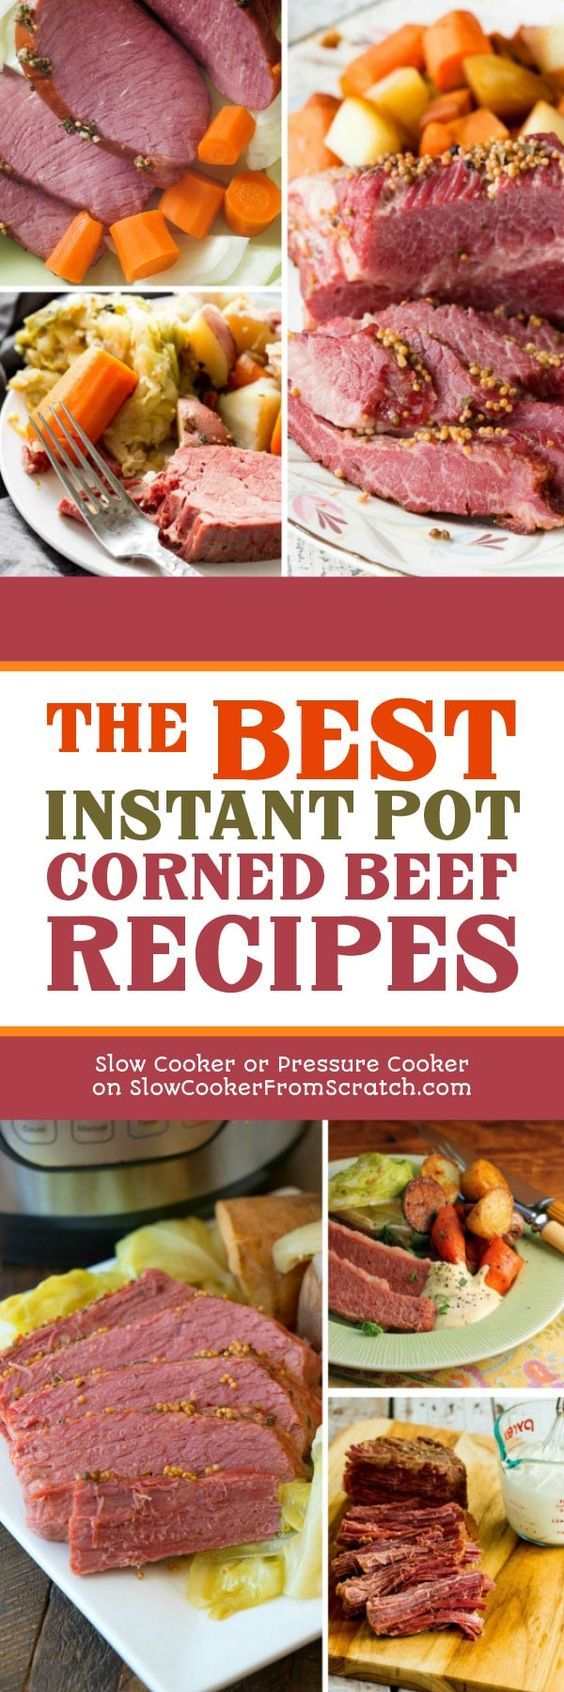 Corned Beef always becomes plentiful and goes on sale at this time of year, and it's a great choice for a low-carb meal. Here are The BEST Instant Pot Corned Beef Recipes to help you get that juicy corned beef on the table in record time! [featured on Slow Cooker or Pressure Cooker at SlowCookerFromScratch.com] #InstantPot #InstantPotCornedBeef #PressureCooker #PressureCookerCornedBeef #CornedBeefRecipes